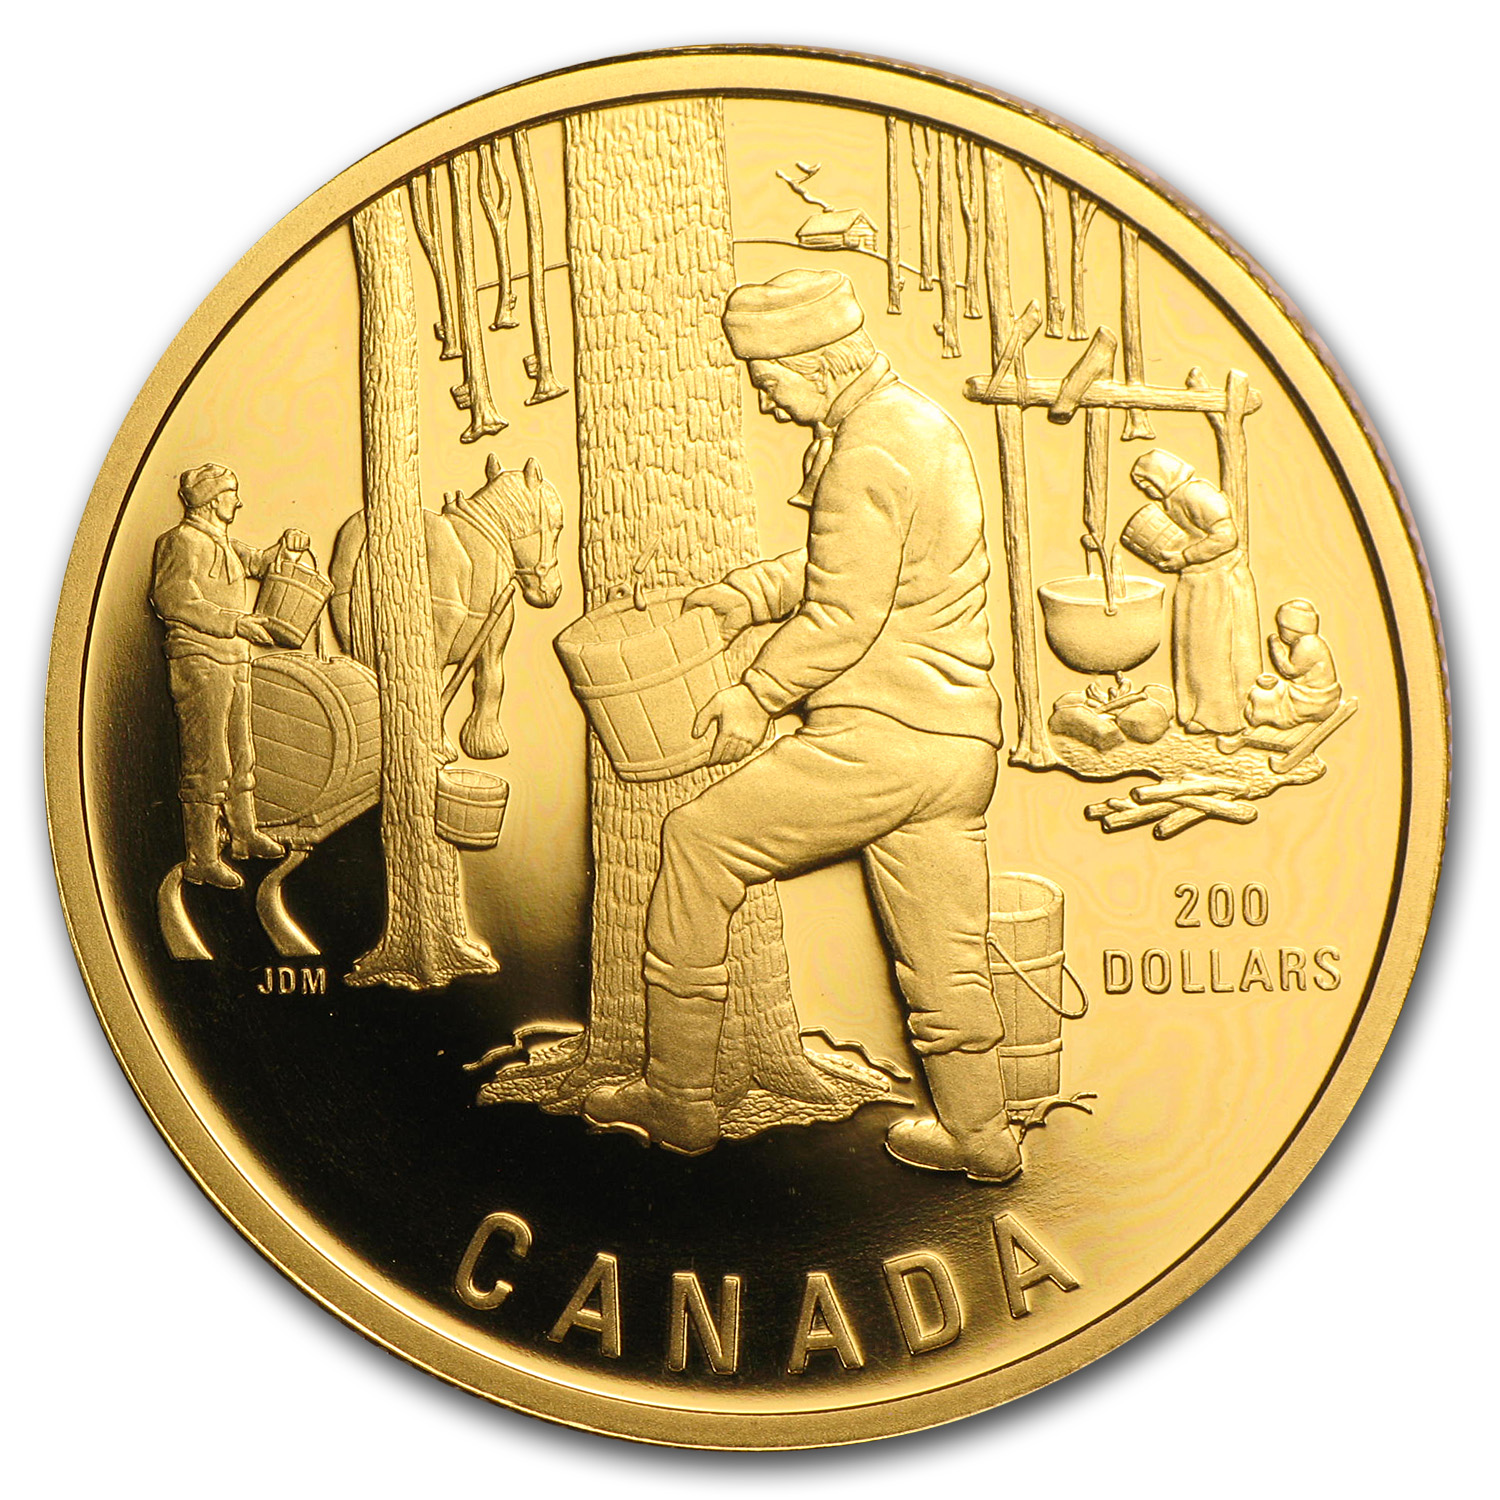 1995 1/2 oz Gold Canadian $200 Maple Syrup Sugaring Proof